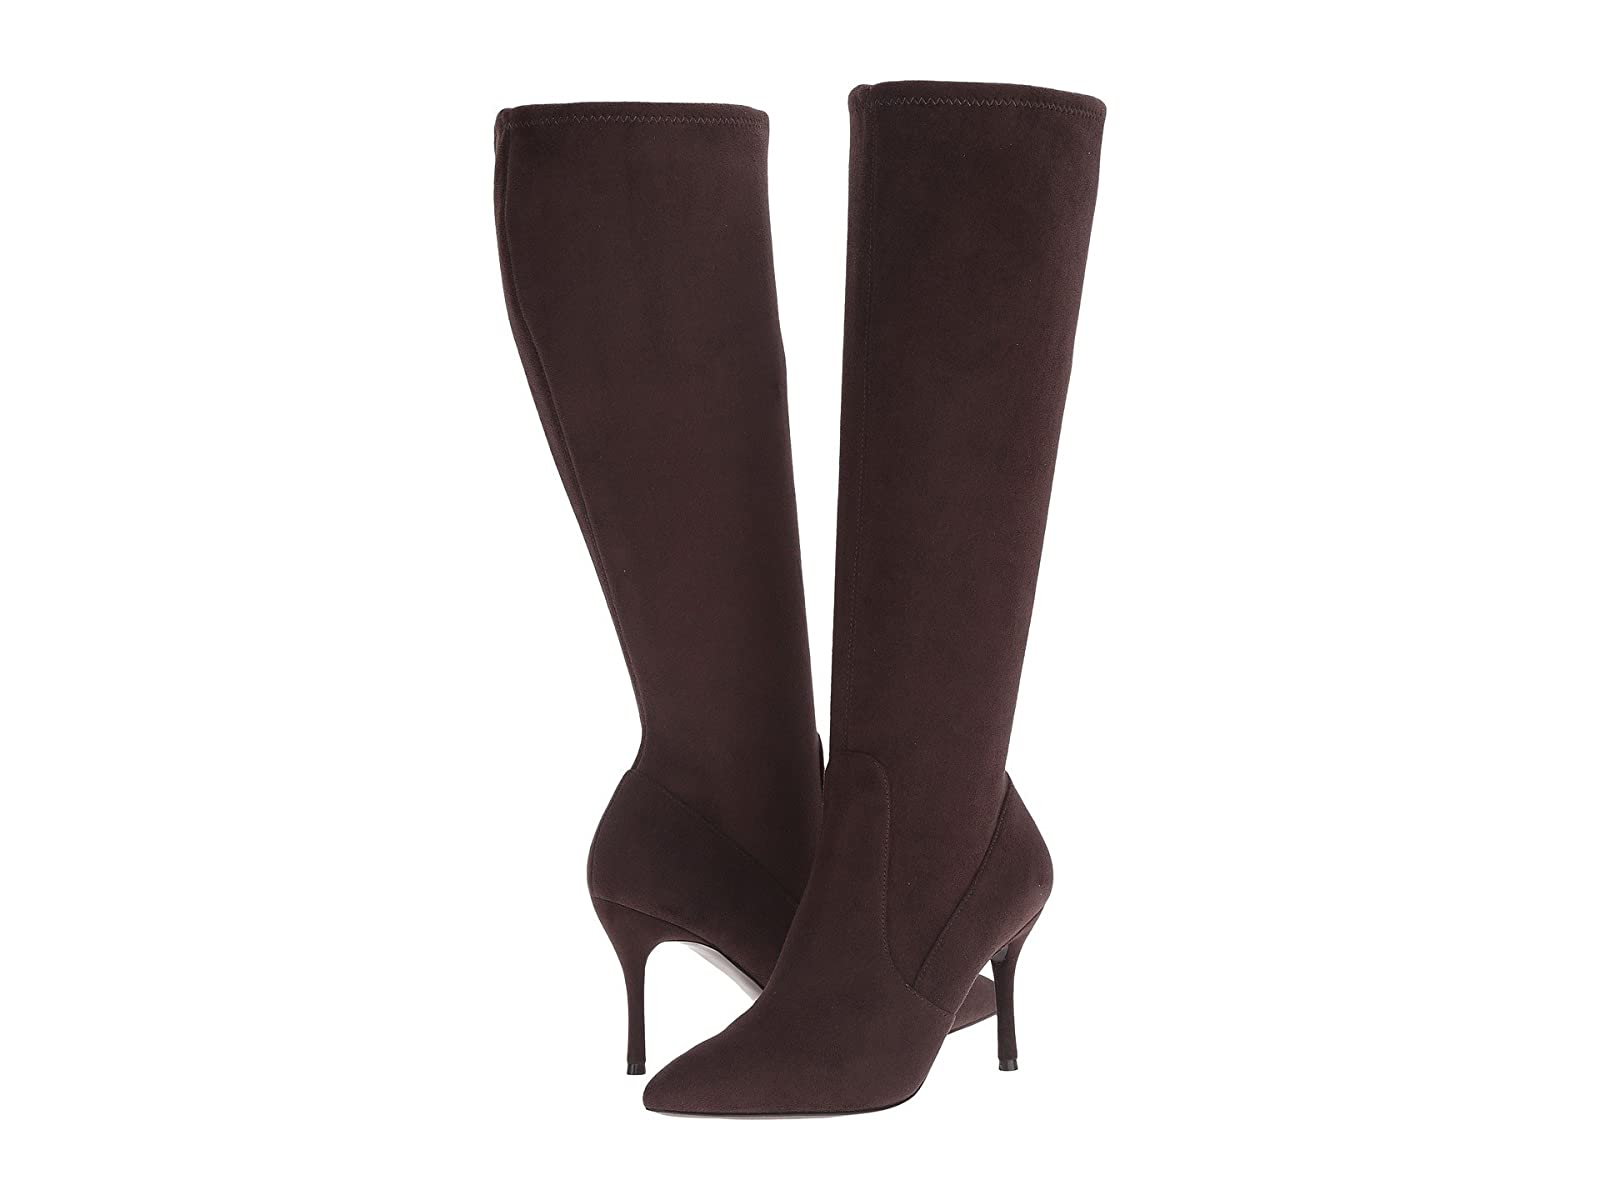 Nine West Calla-WideCheap and distinctive eye-catching shoes